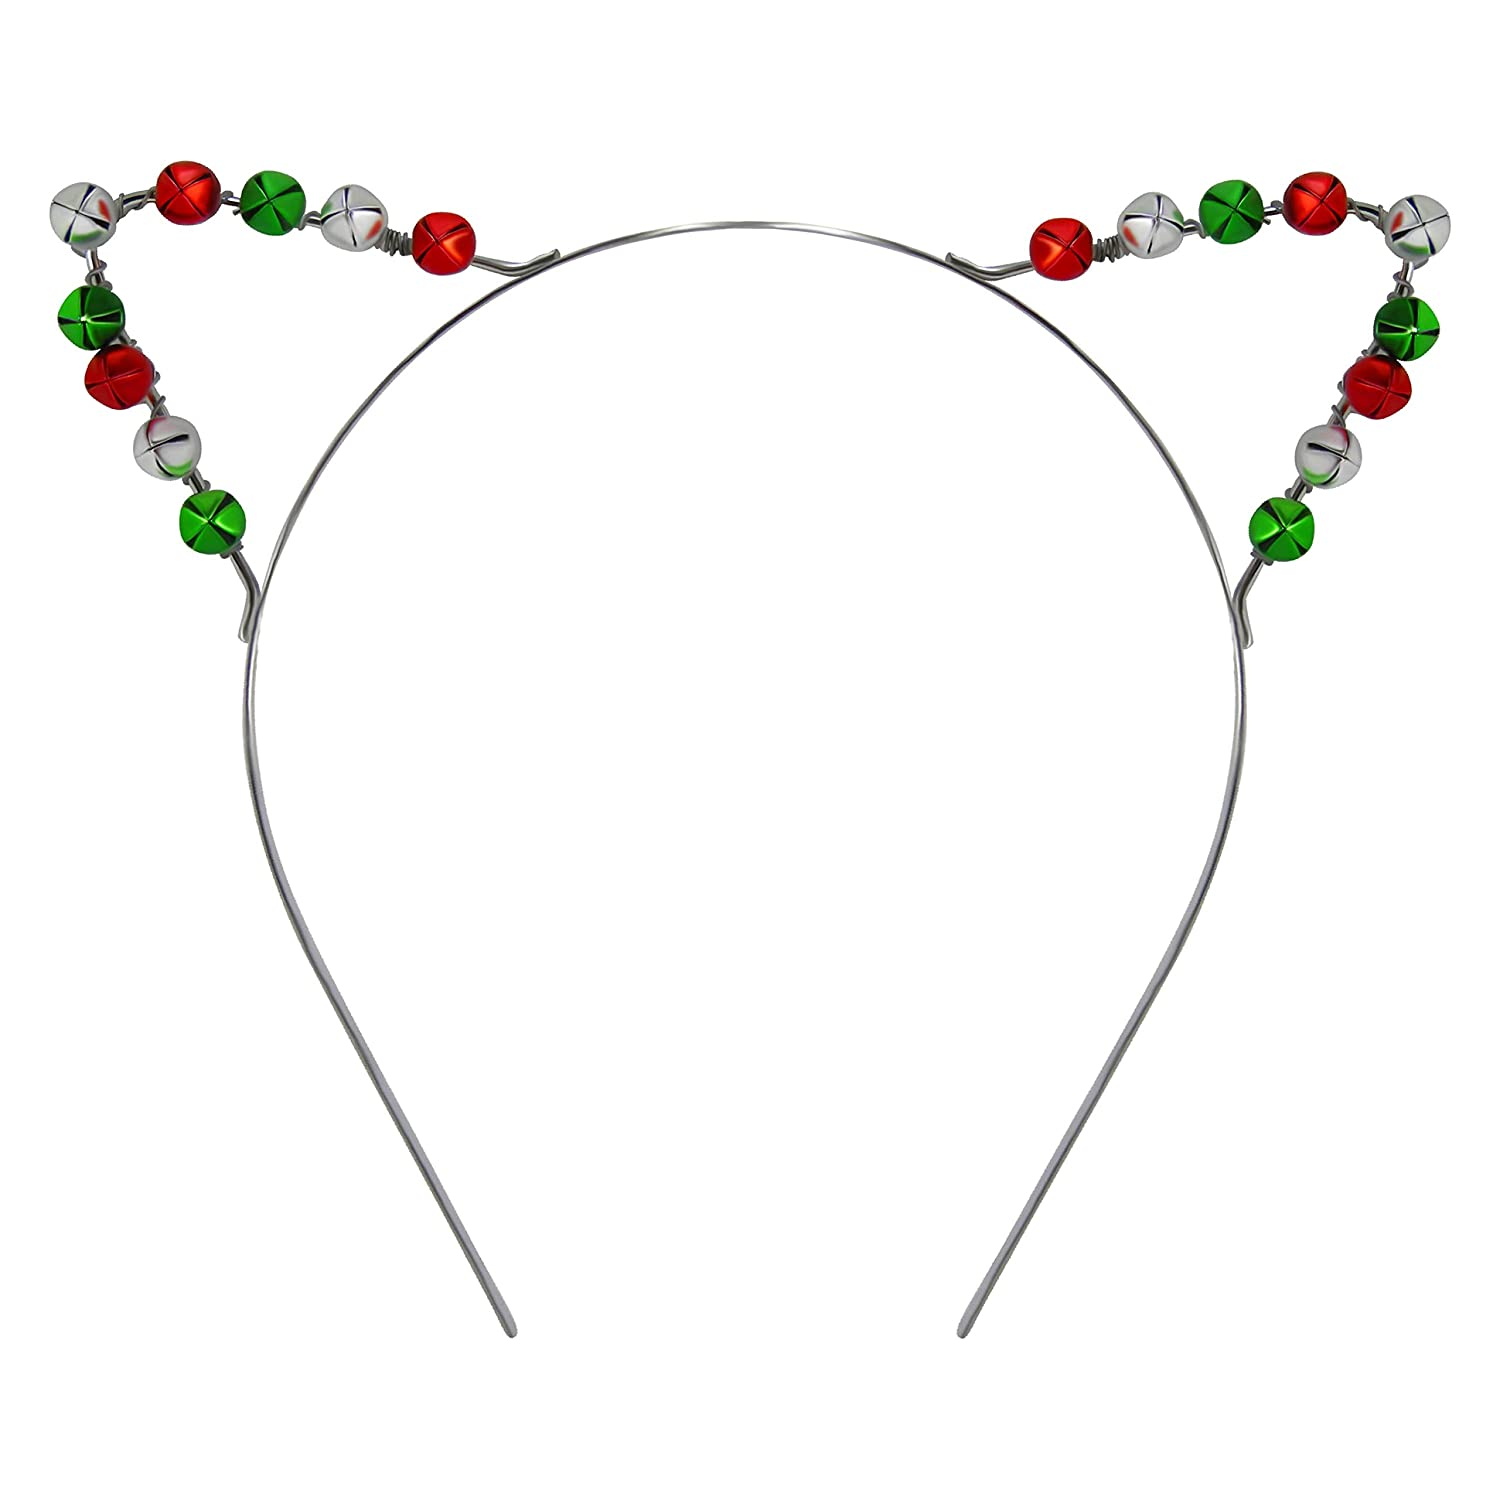 Lux Accessories Silver Tone Red Green Bells Cat Ears Christmas Holiday Headband